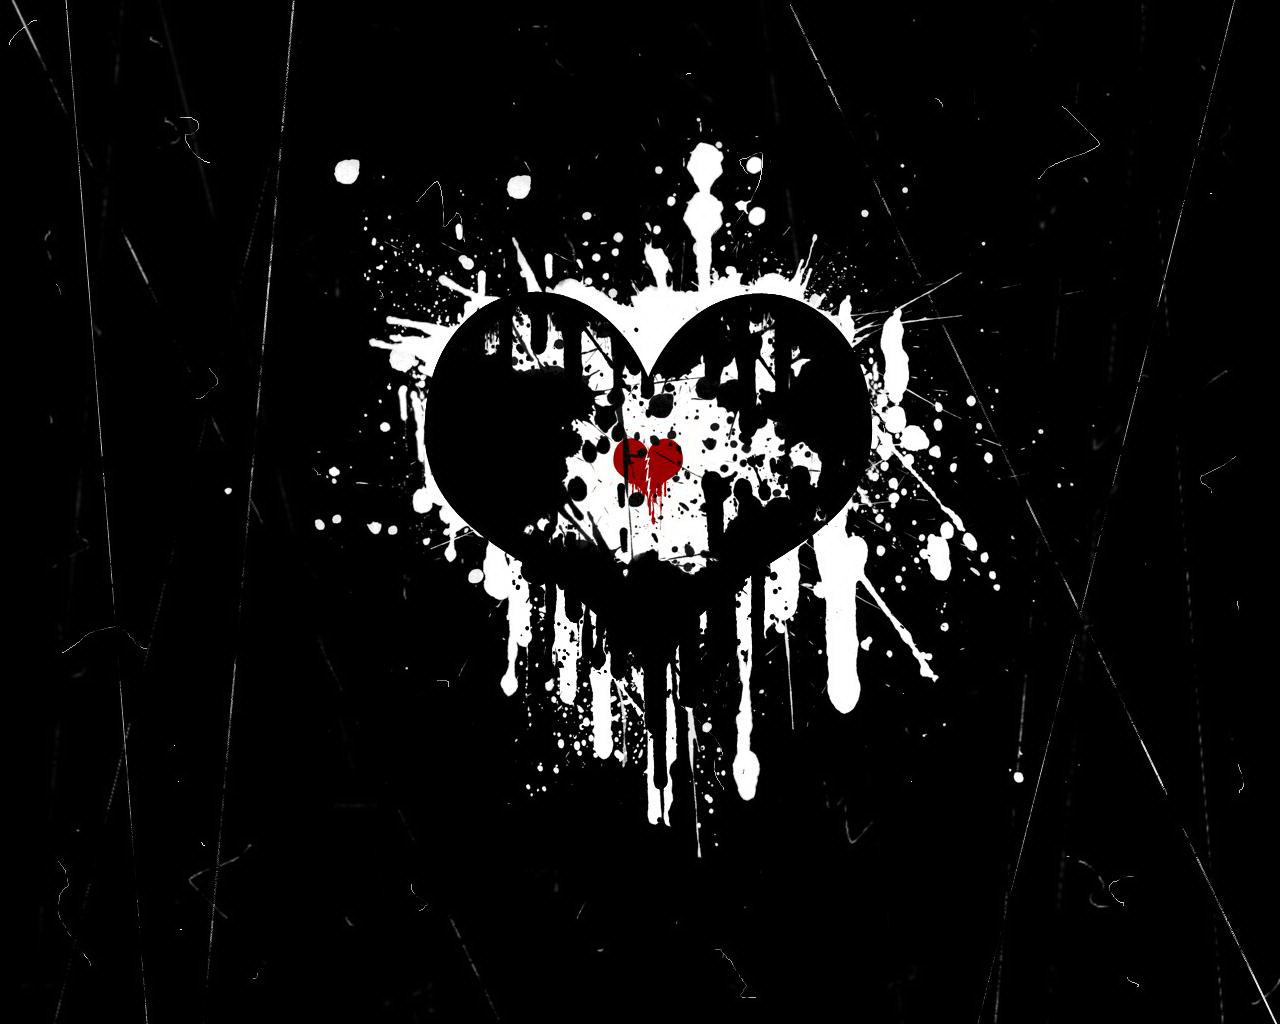 74 Broken Heart Wallpaper Love On Wallpapersafari